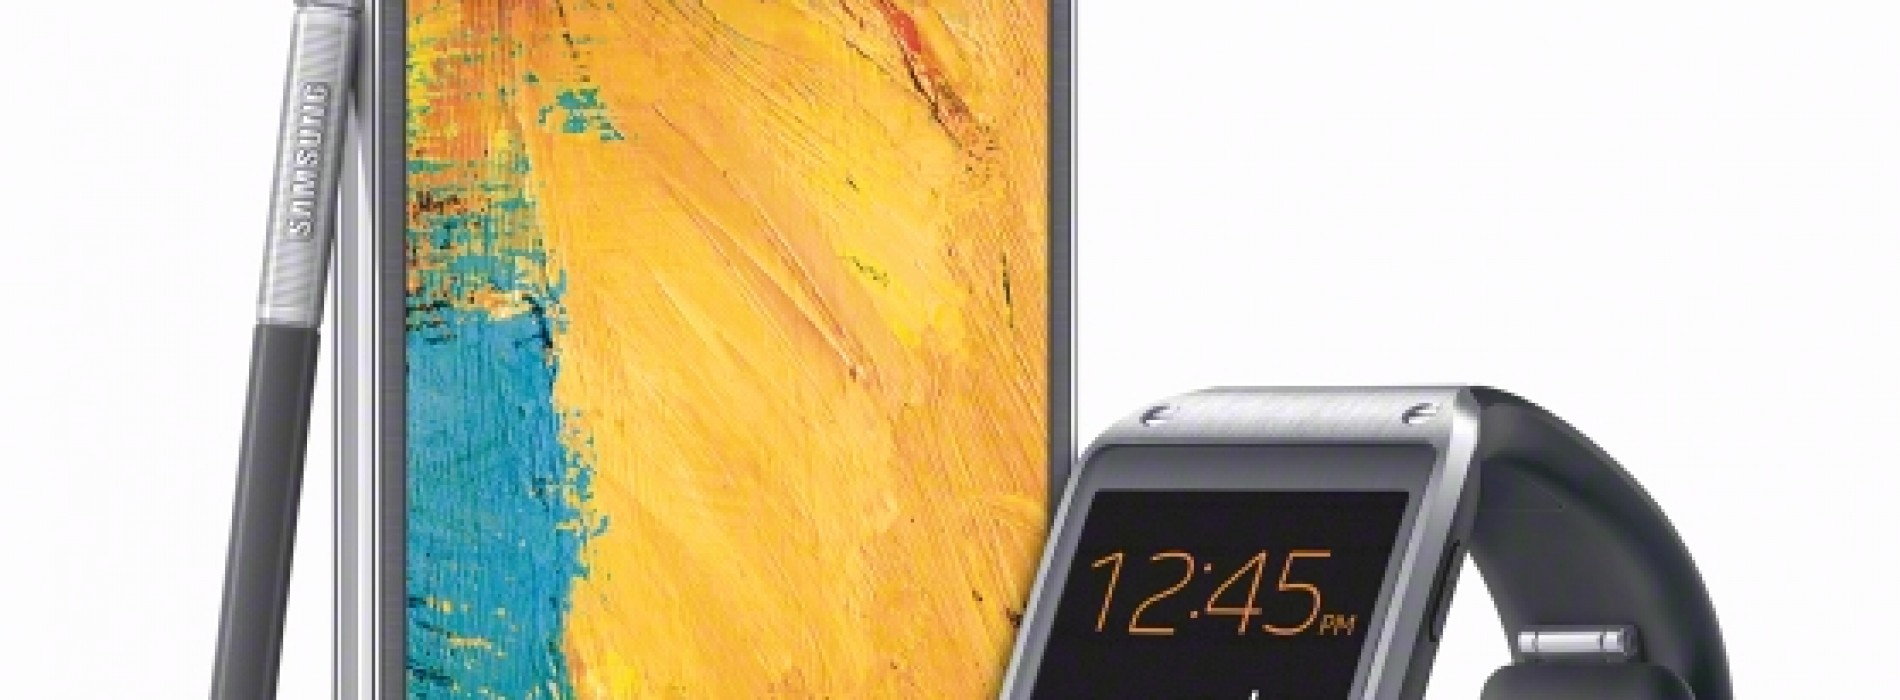 Sprint: Galaxy Note 3 and Galaxy Gear due on October 4